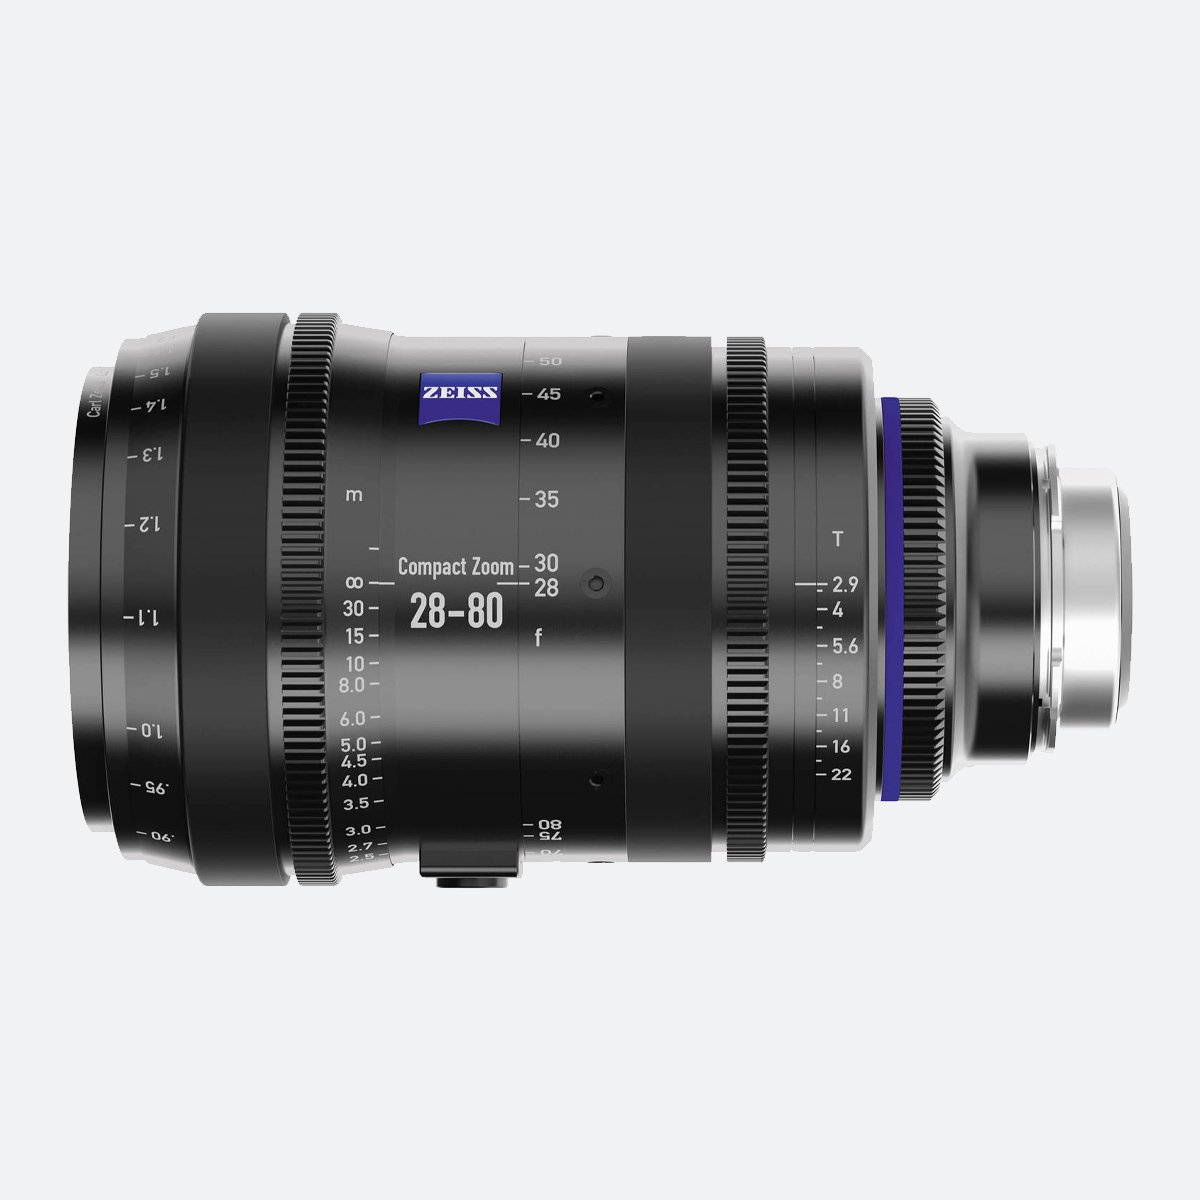 Zeiss 28-80mm T2.9 CZ.2 Compact Cine Zoom